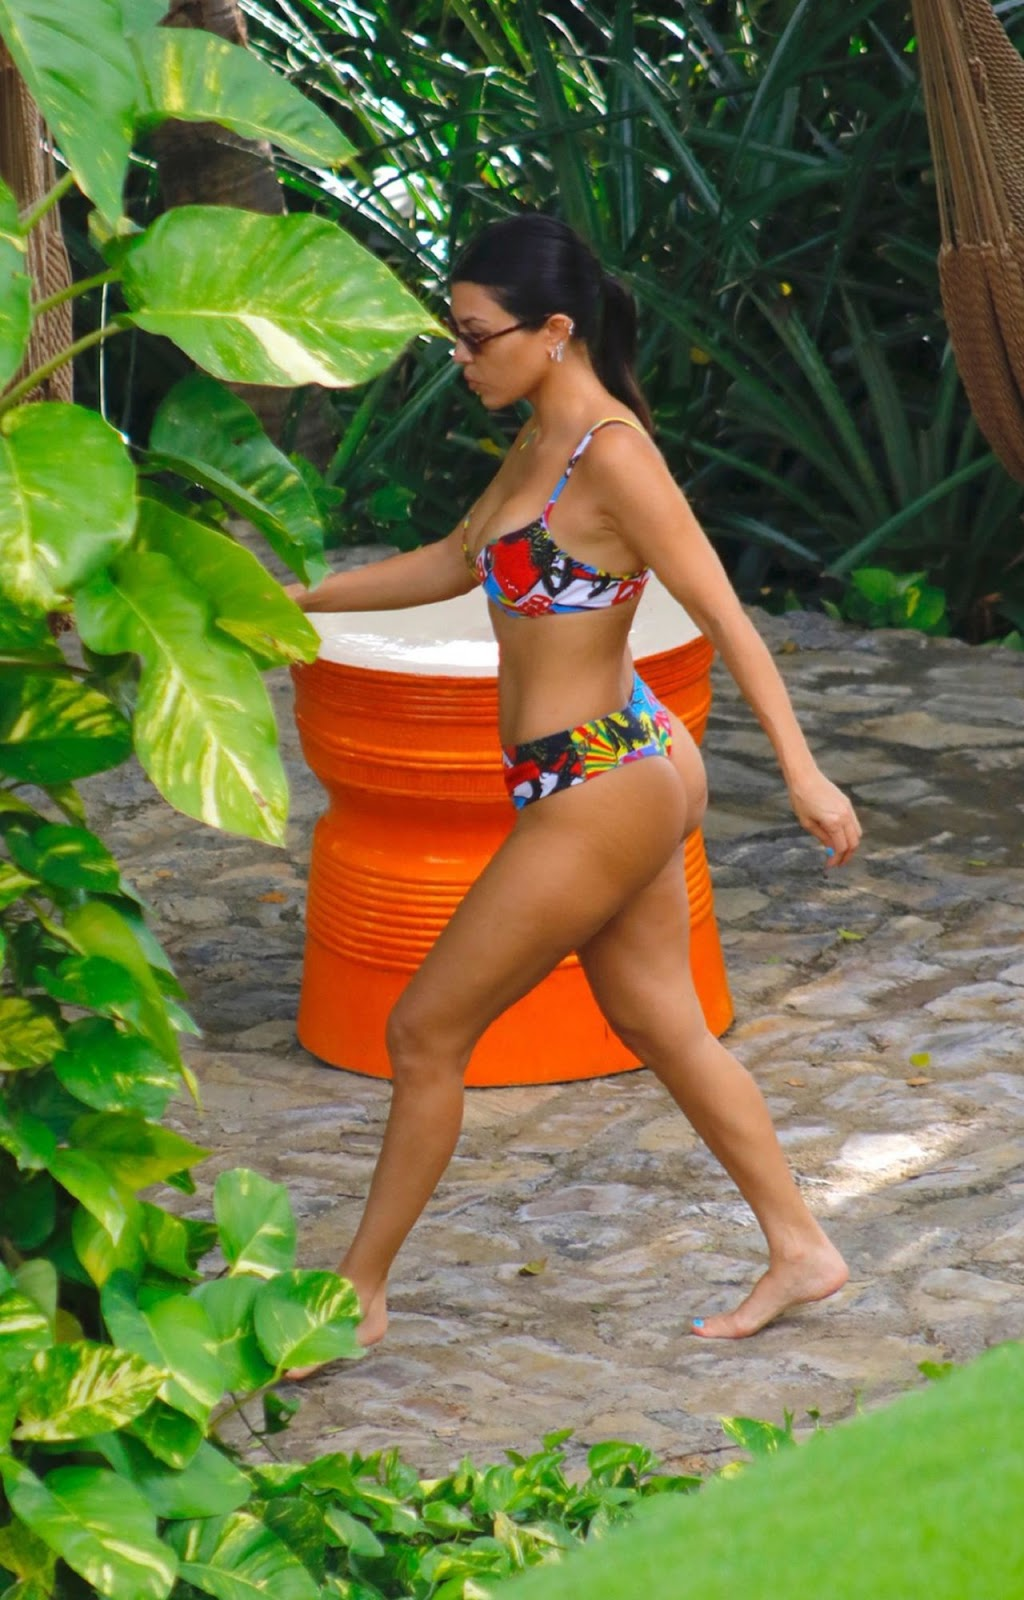 Kourtney Kardashian in Bikini on Vacation in Costa Rica